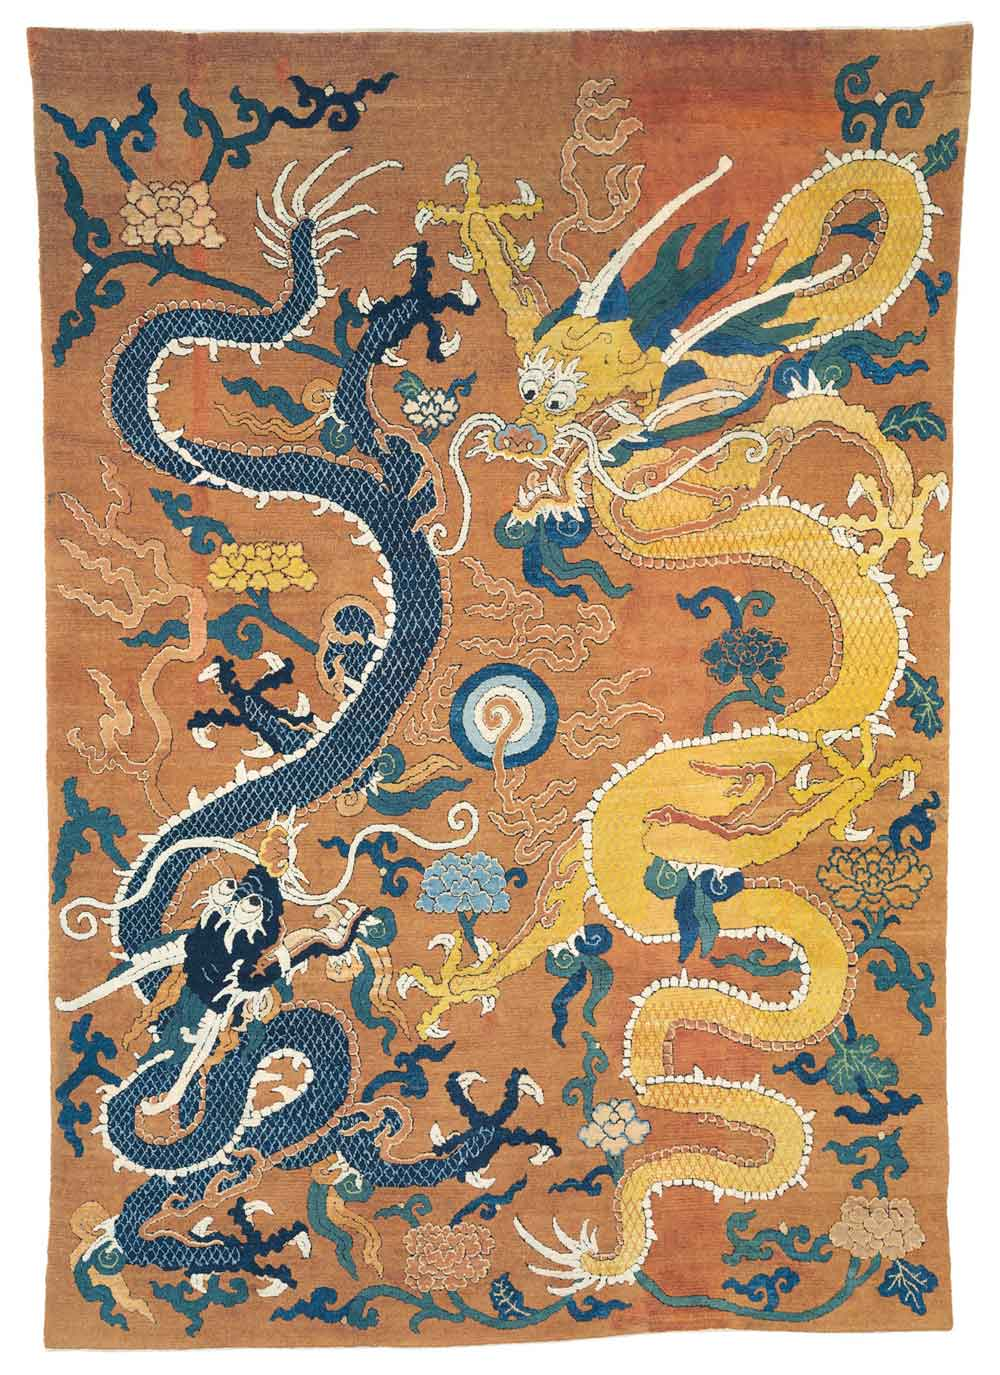 Christie's, IMPERIAL DOUBLE-DRAGON CARPET, CHINA, WANLI PERIOD